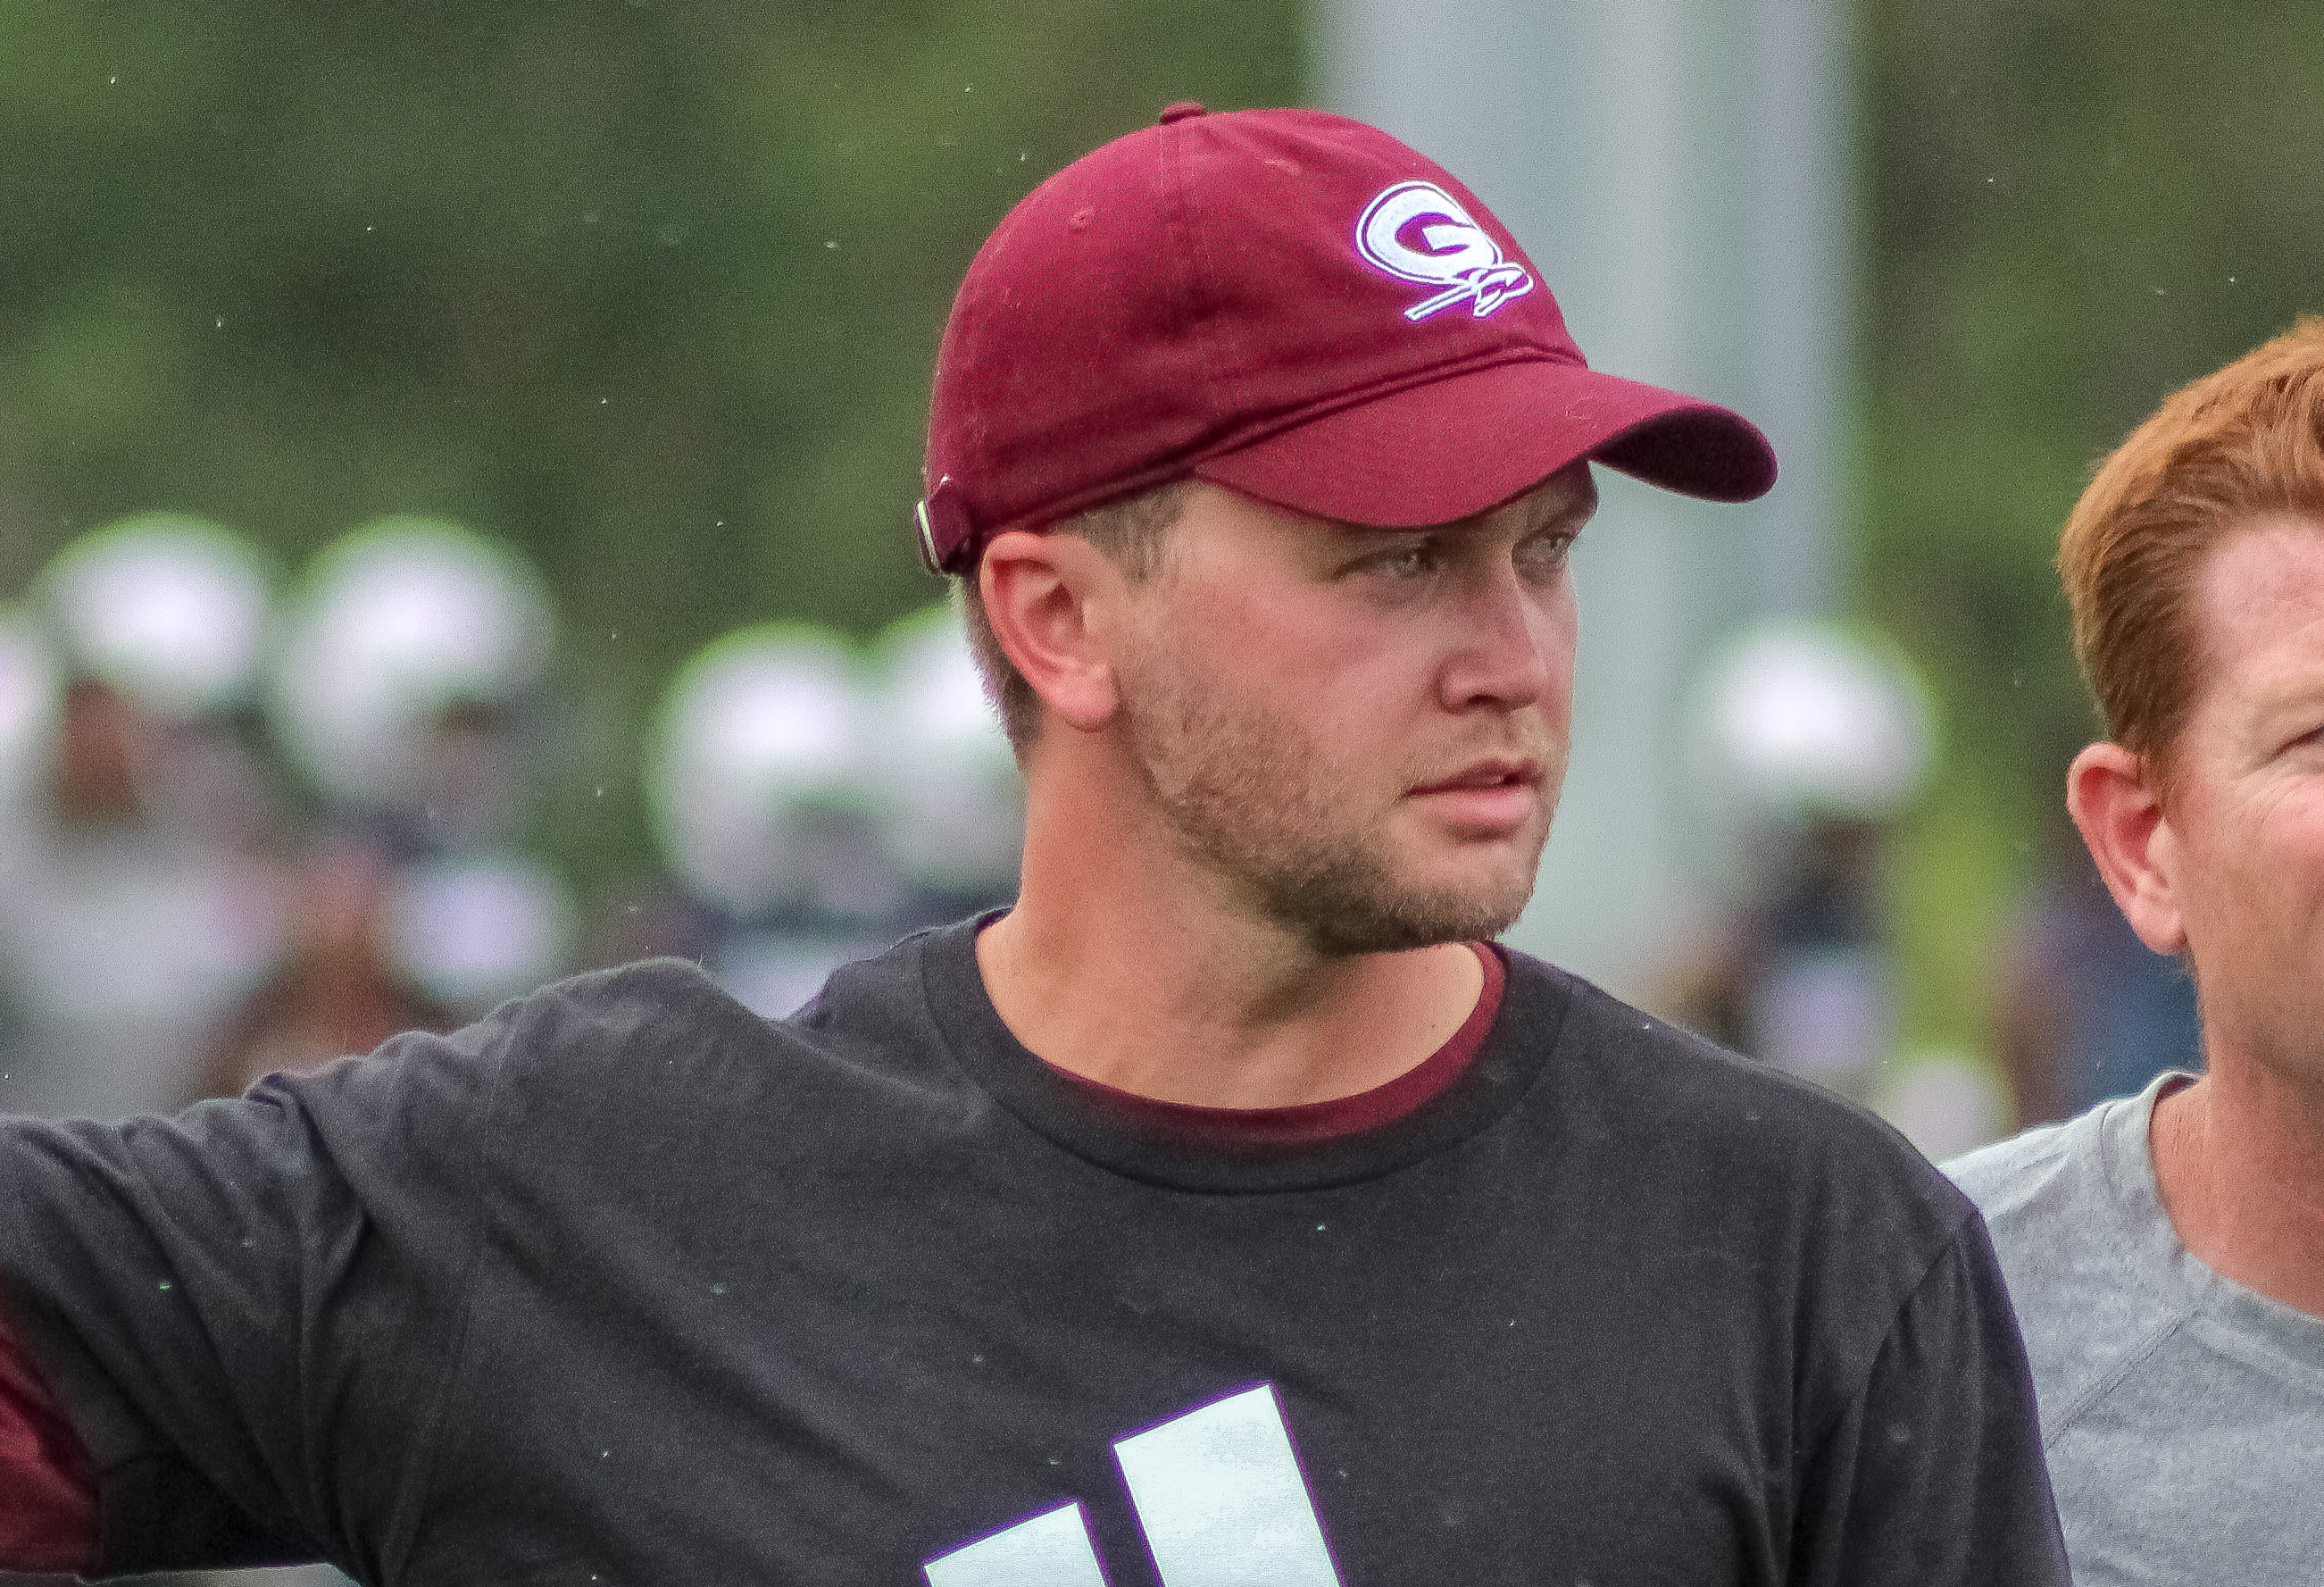 Gardendale High School assistant coach William Eads